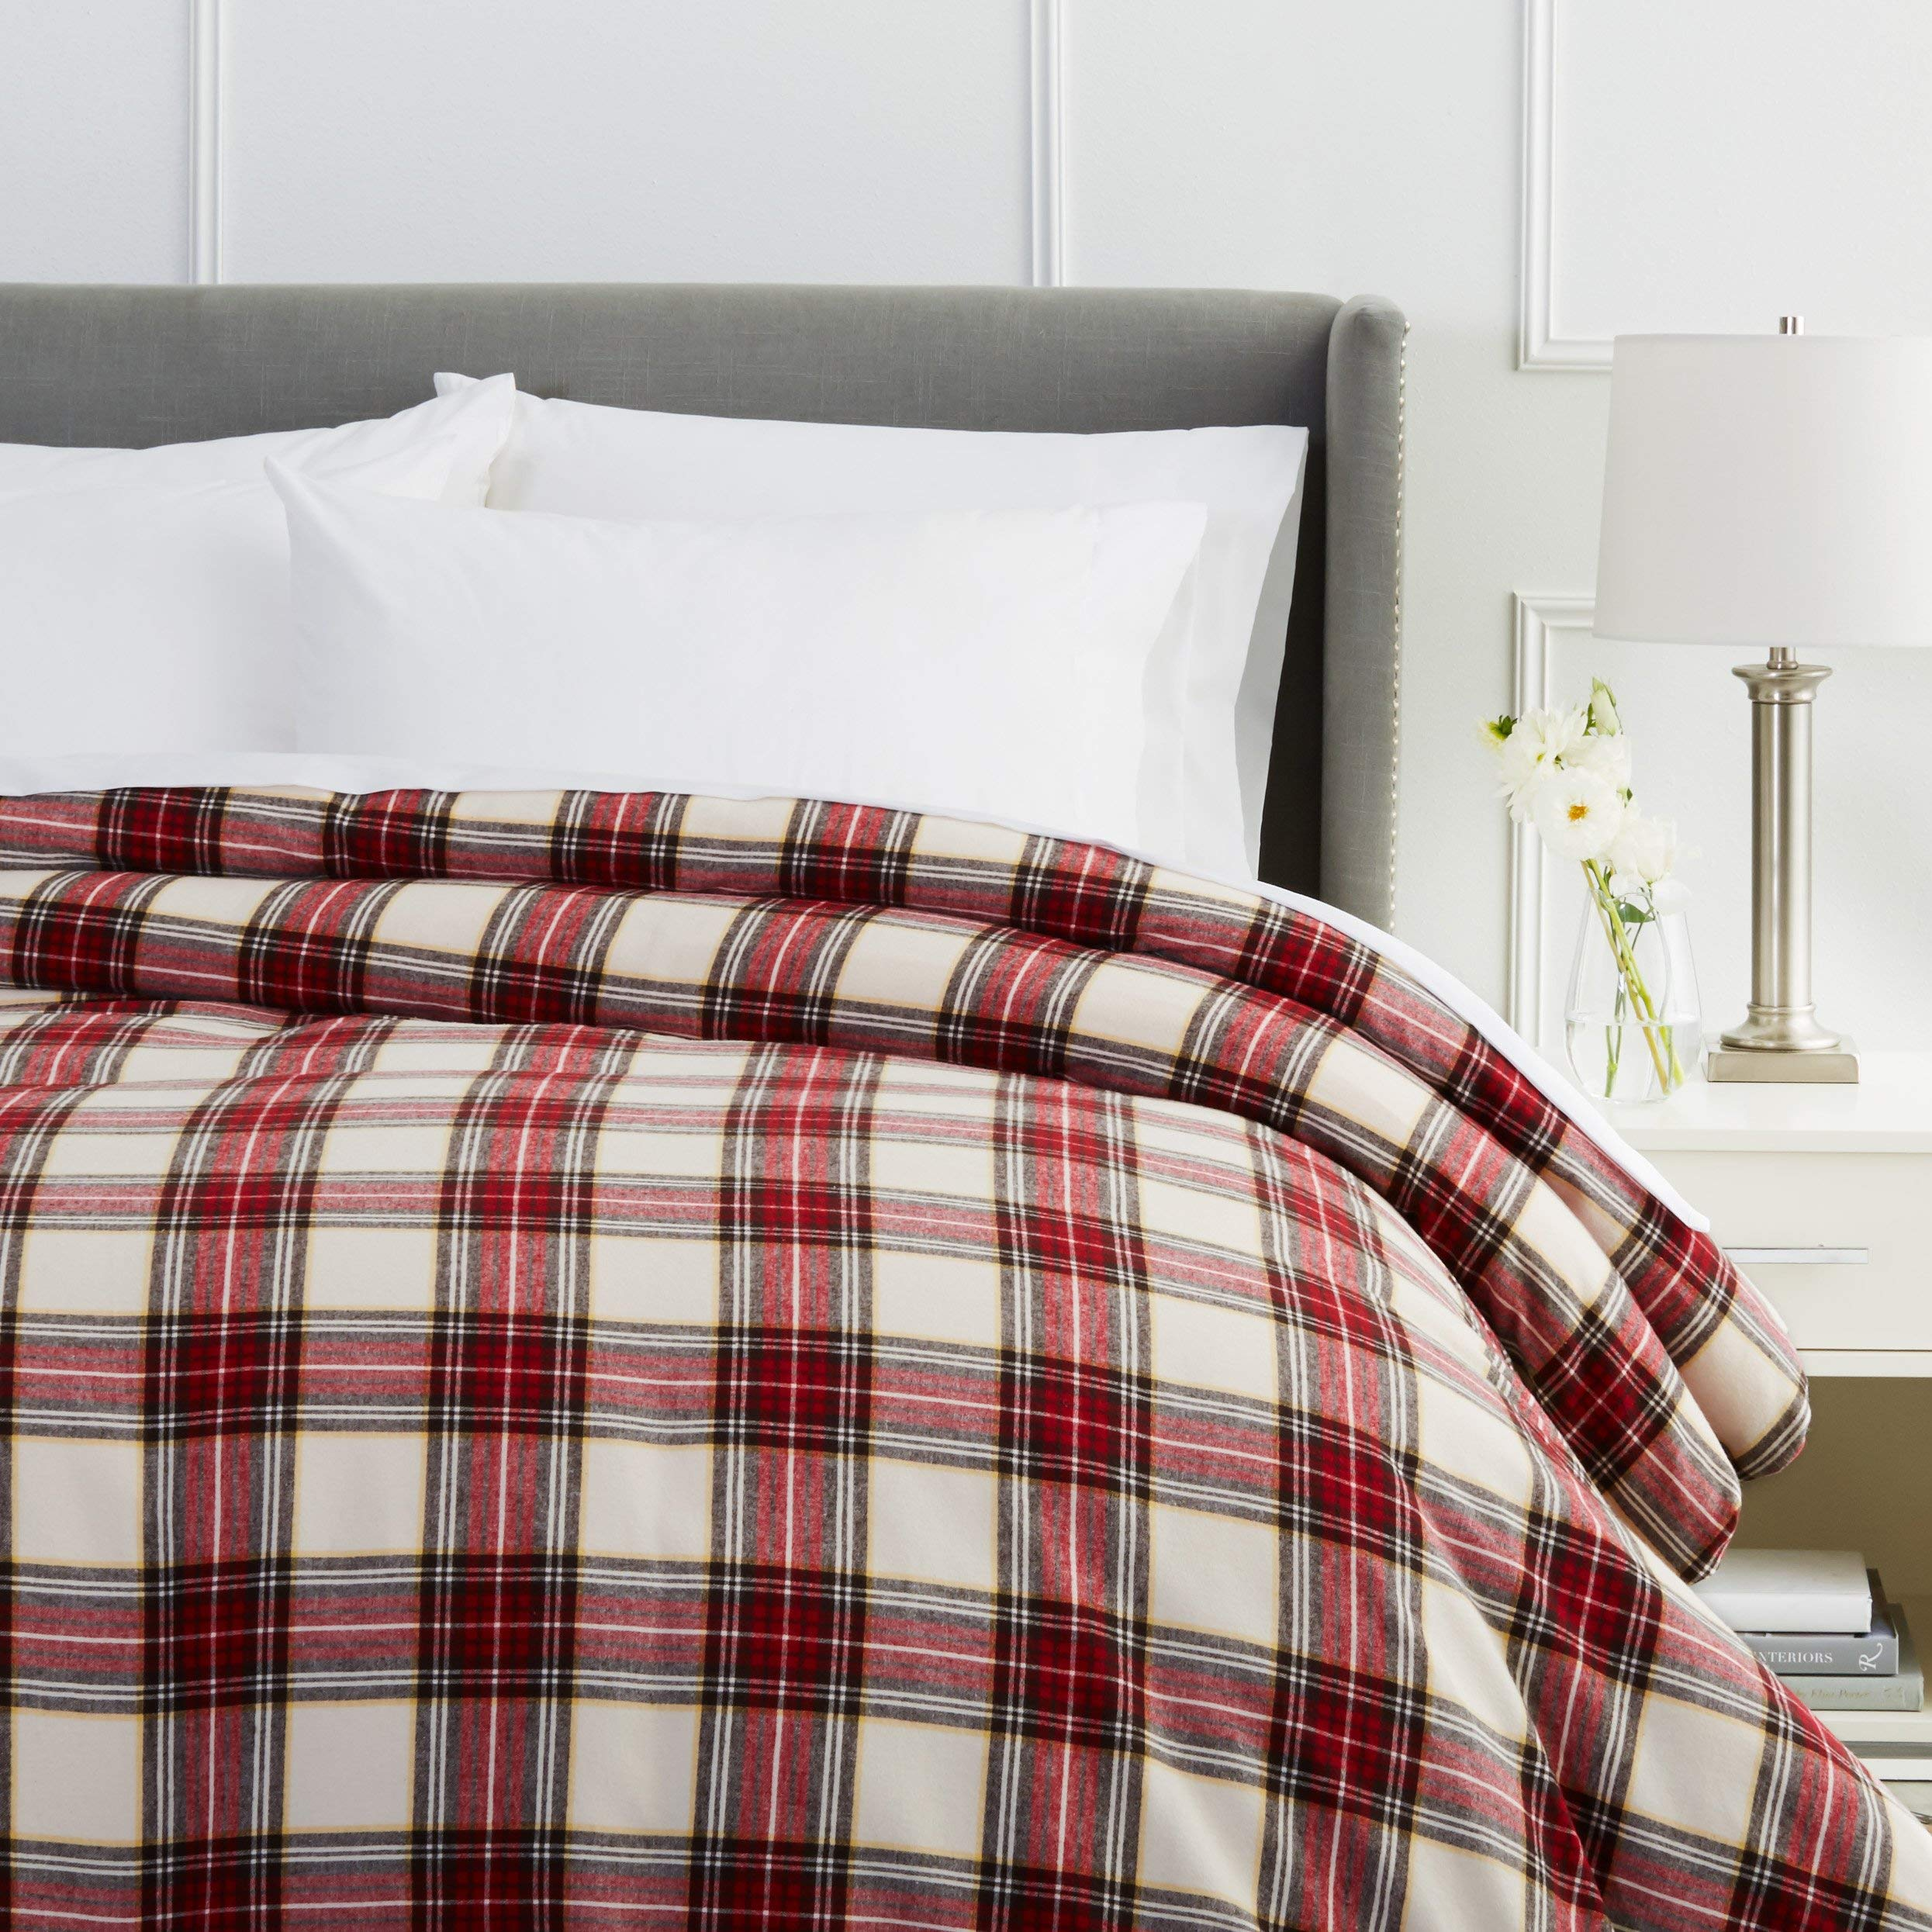 Pinzon Plaid Flannel Duvet Cover - Twin, Cream and Red Plaid